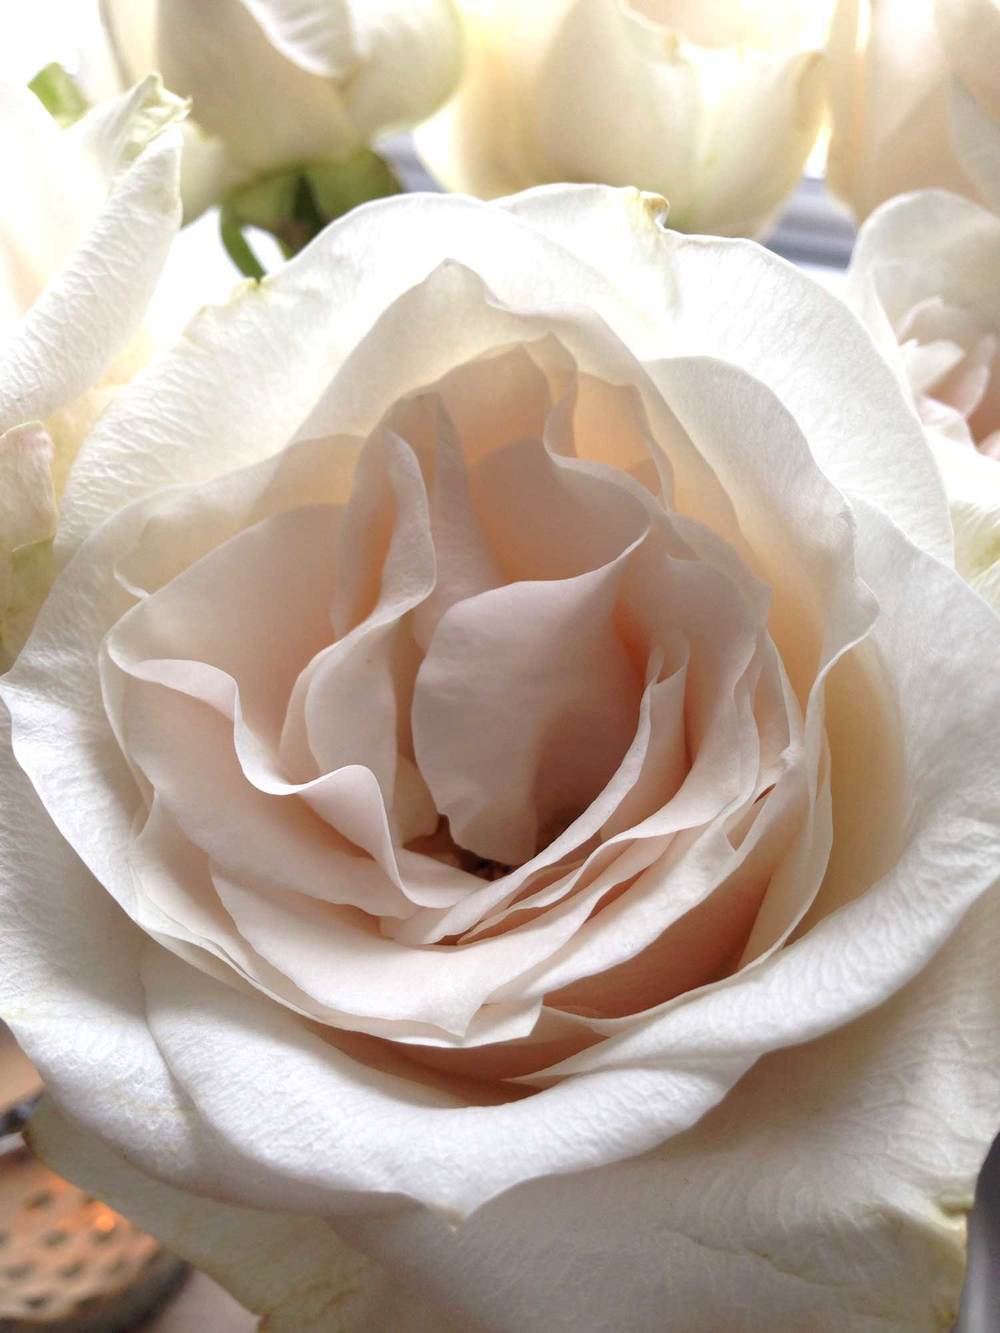 Aren't roses gorgeous? I love their papery petals!